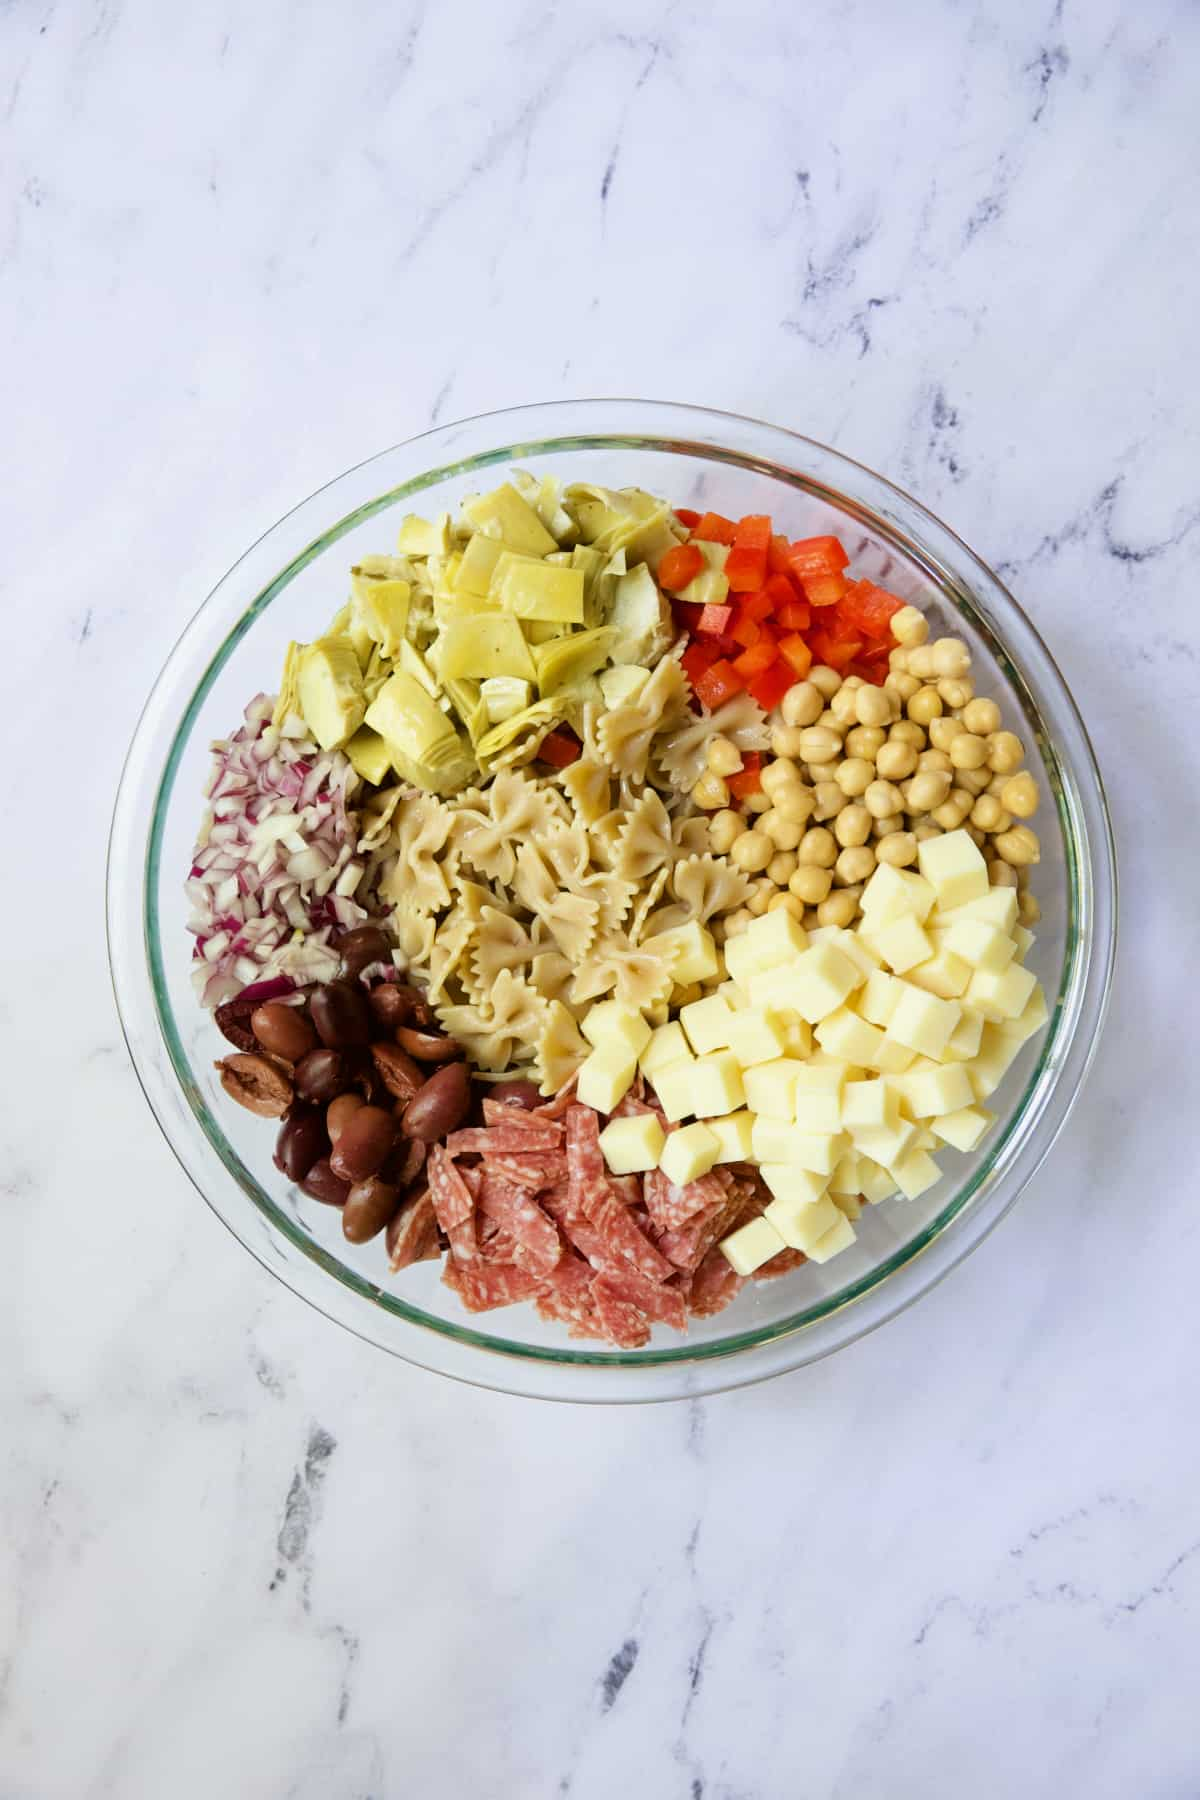 Ingredients for Antipasto Pasta Salad with Parmesan Herb Vinaigrette in glass bowl before being combined.